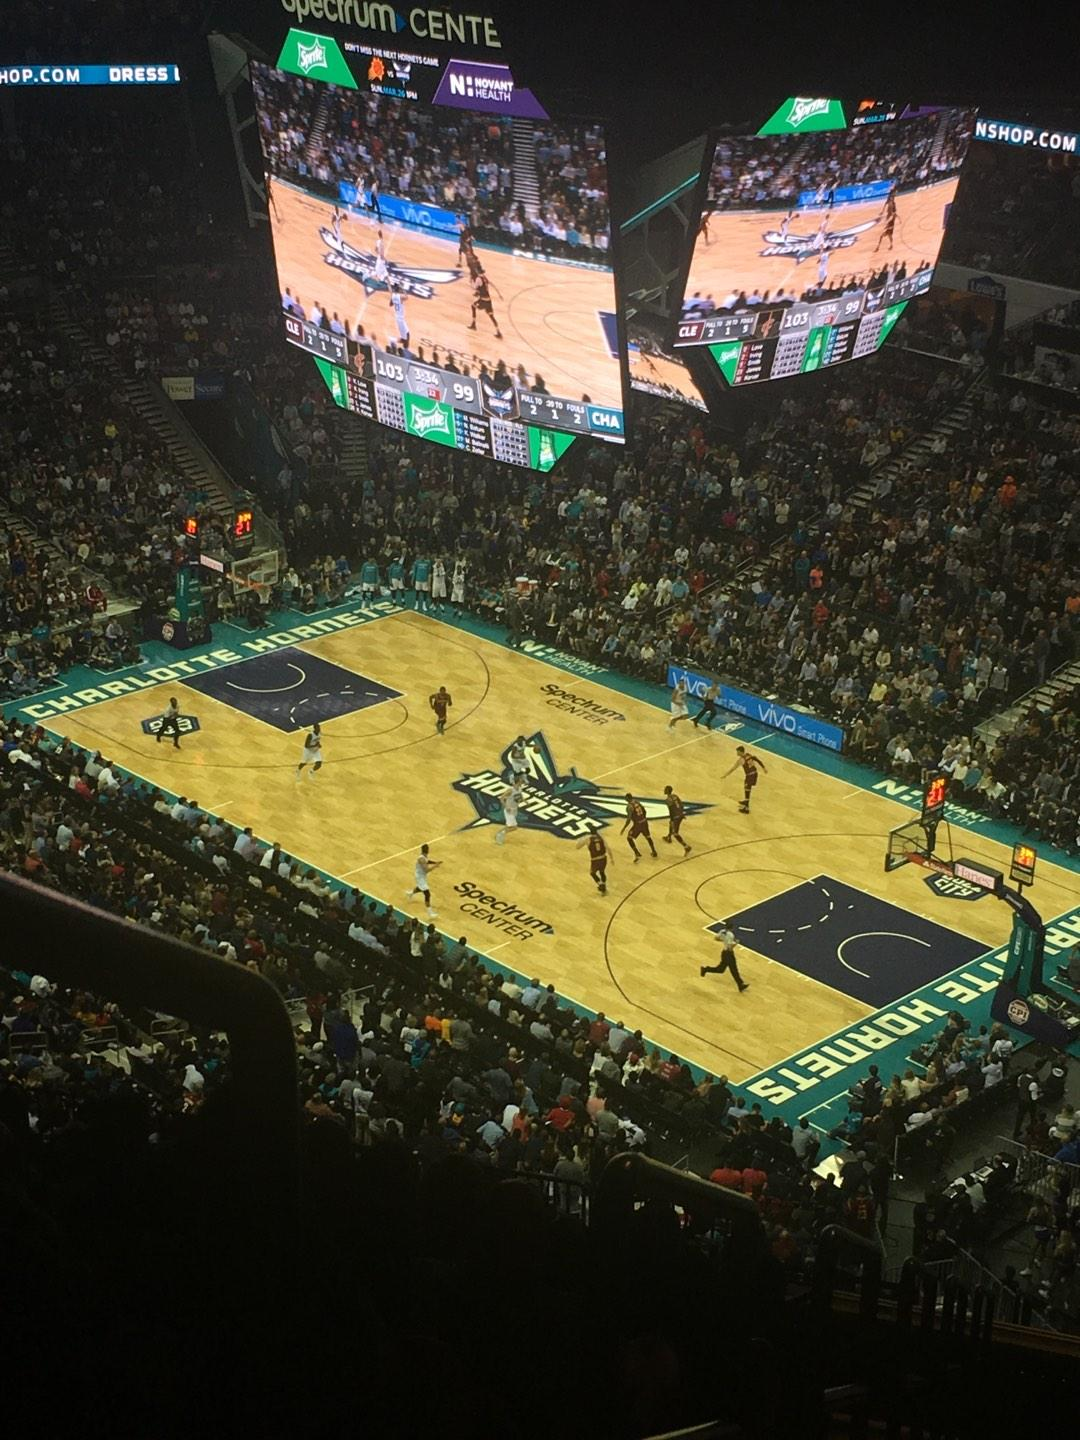 Spectrum Center Section 221 Row T Seat 27